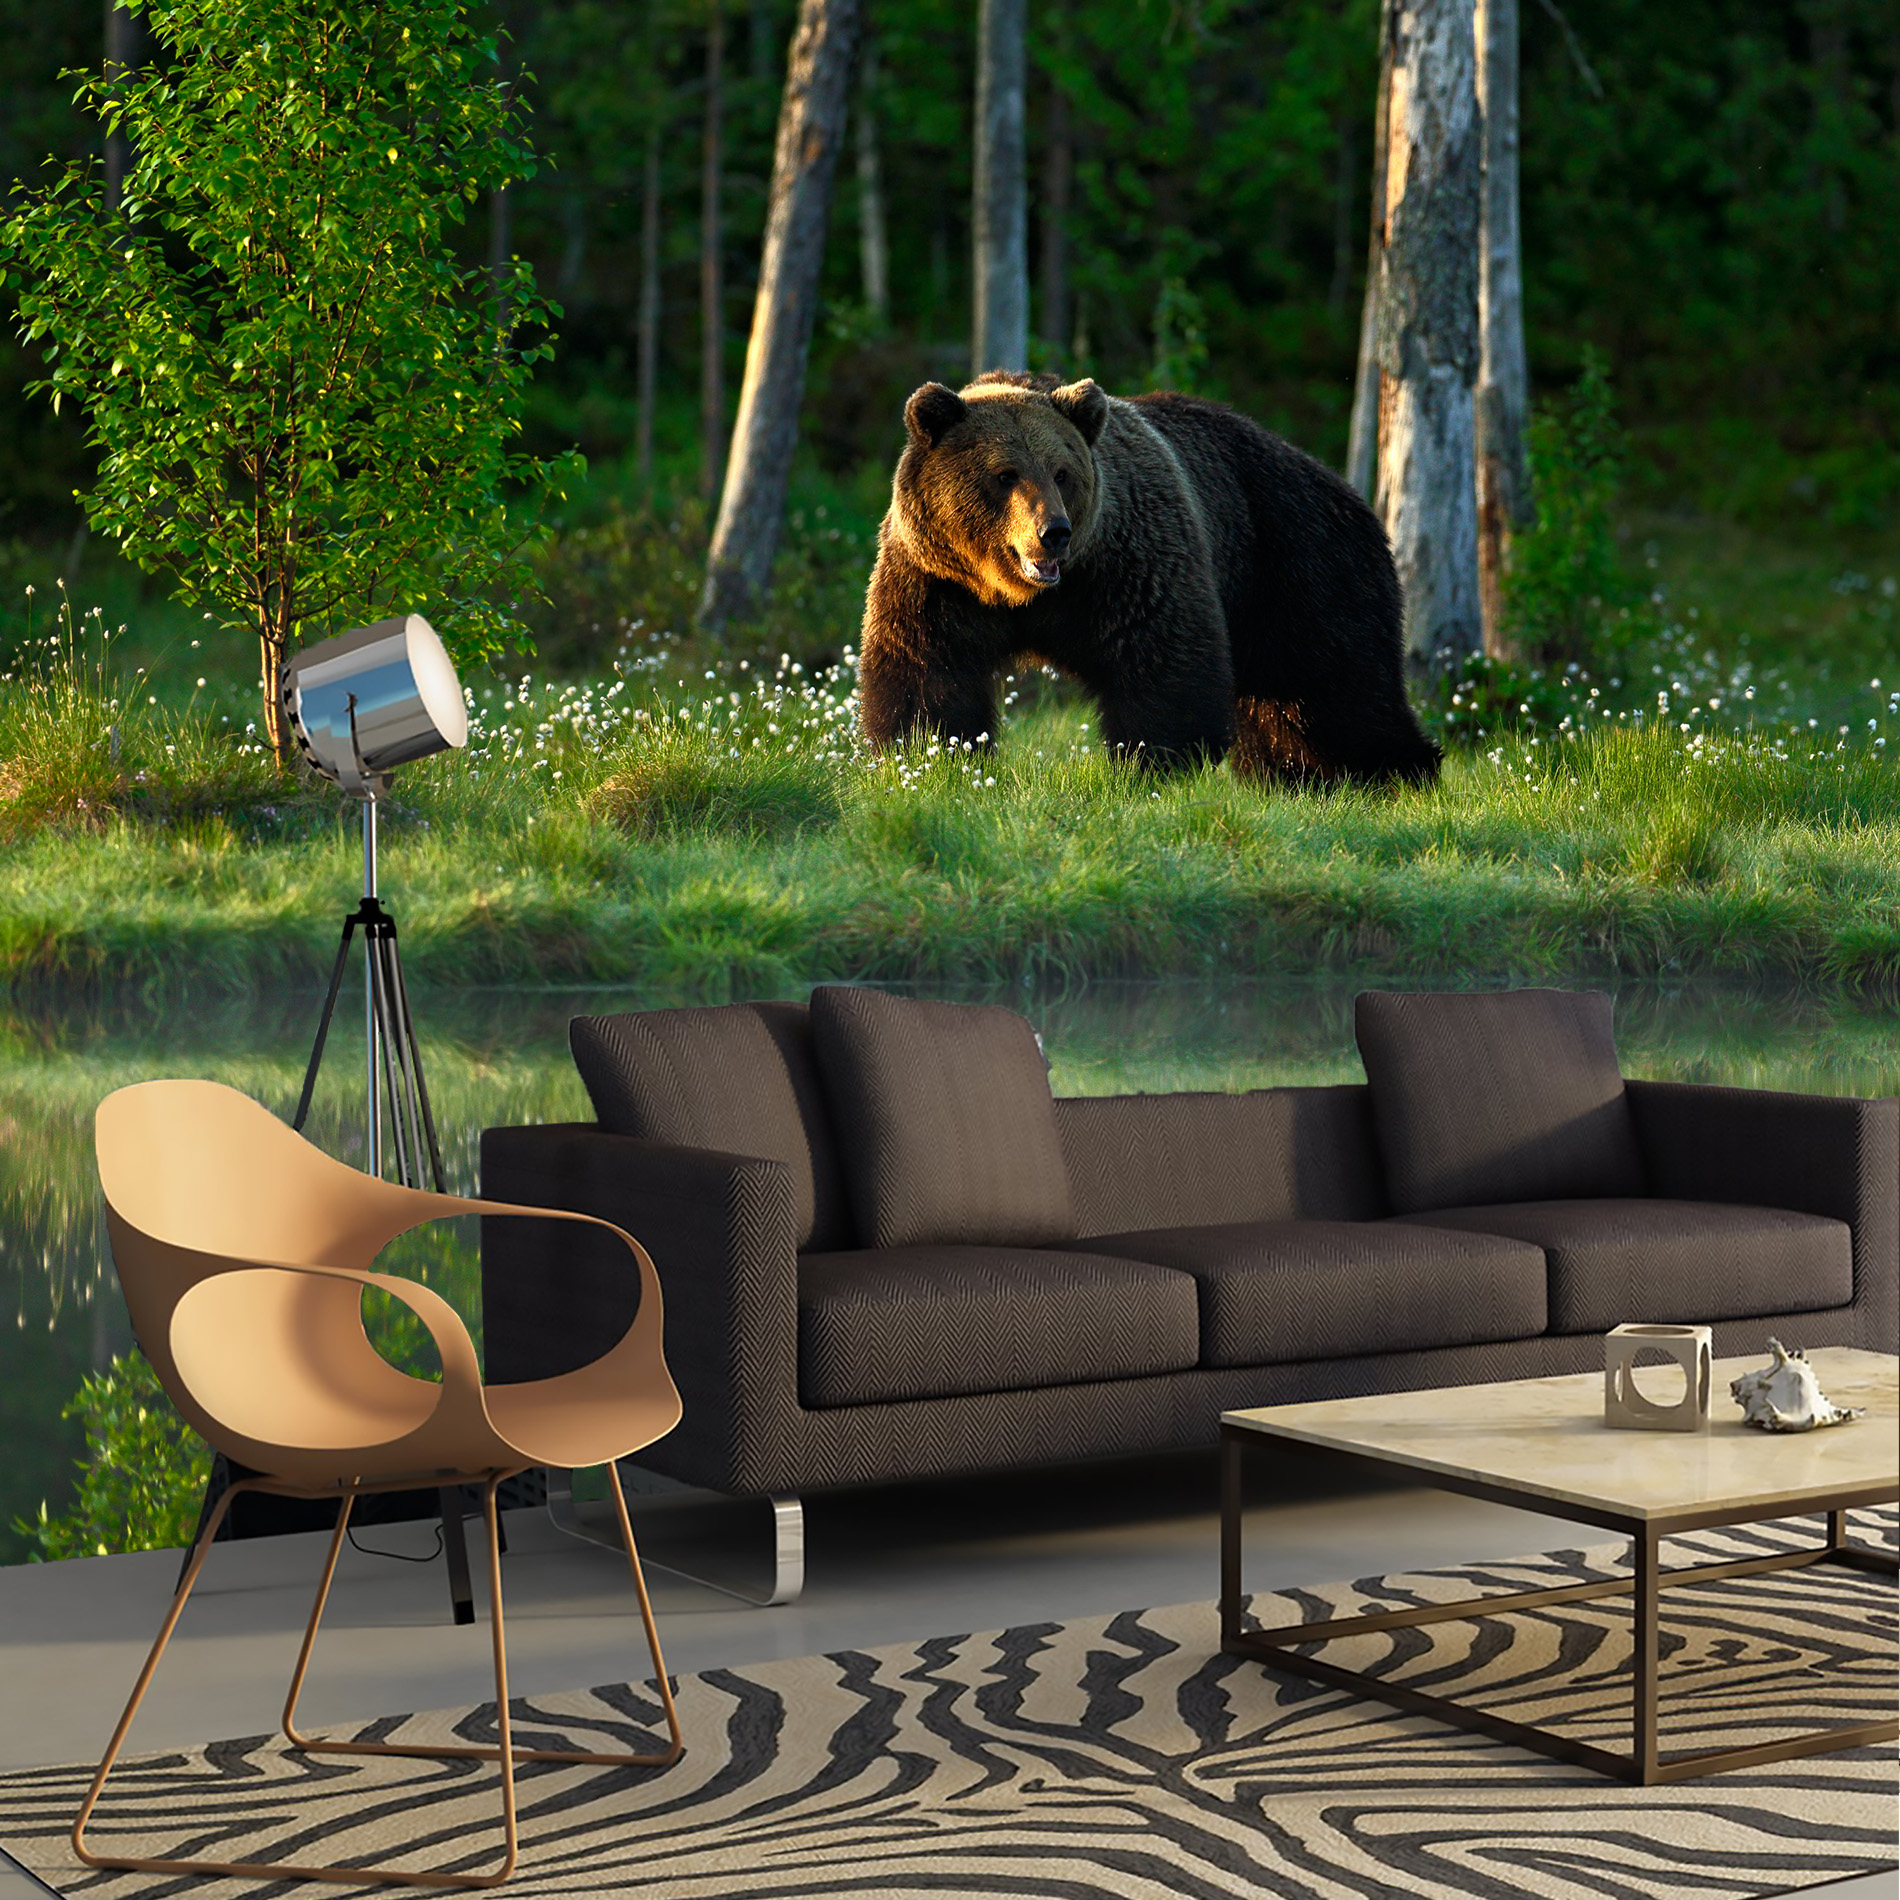 Wall Mural Nature Green Forest And Bear. Stereoscopic Wall Mural For Home Hall Bedroom